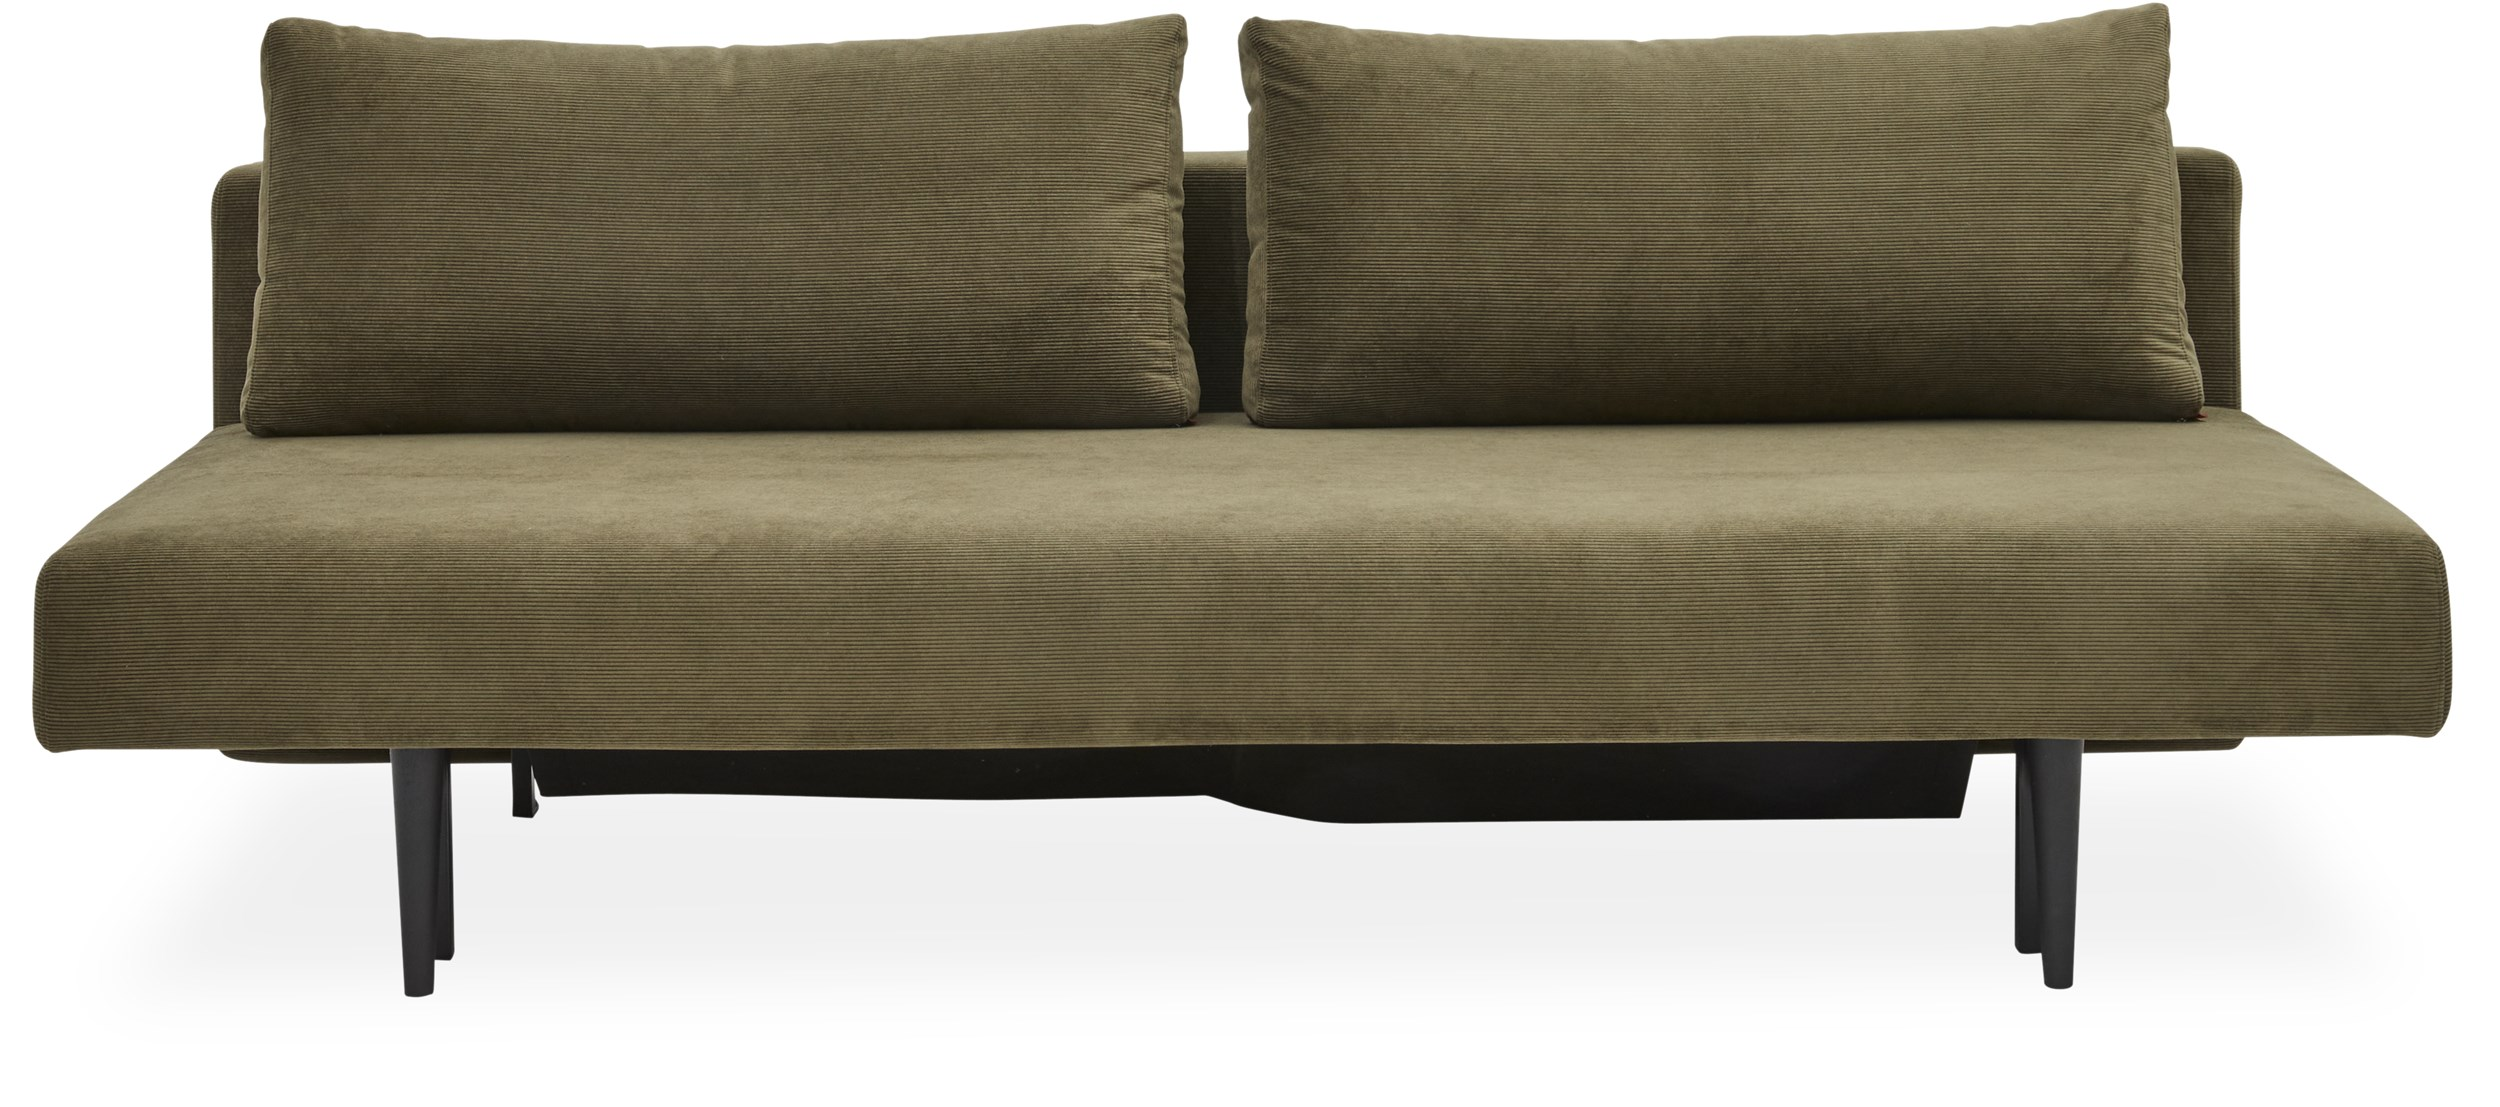 Innovation Living - Laust Sovesofa - Betræk 316 stof, pocketspring madras og sorte træben